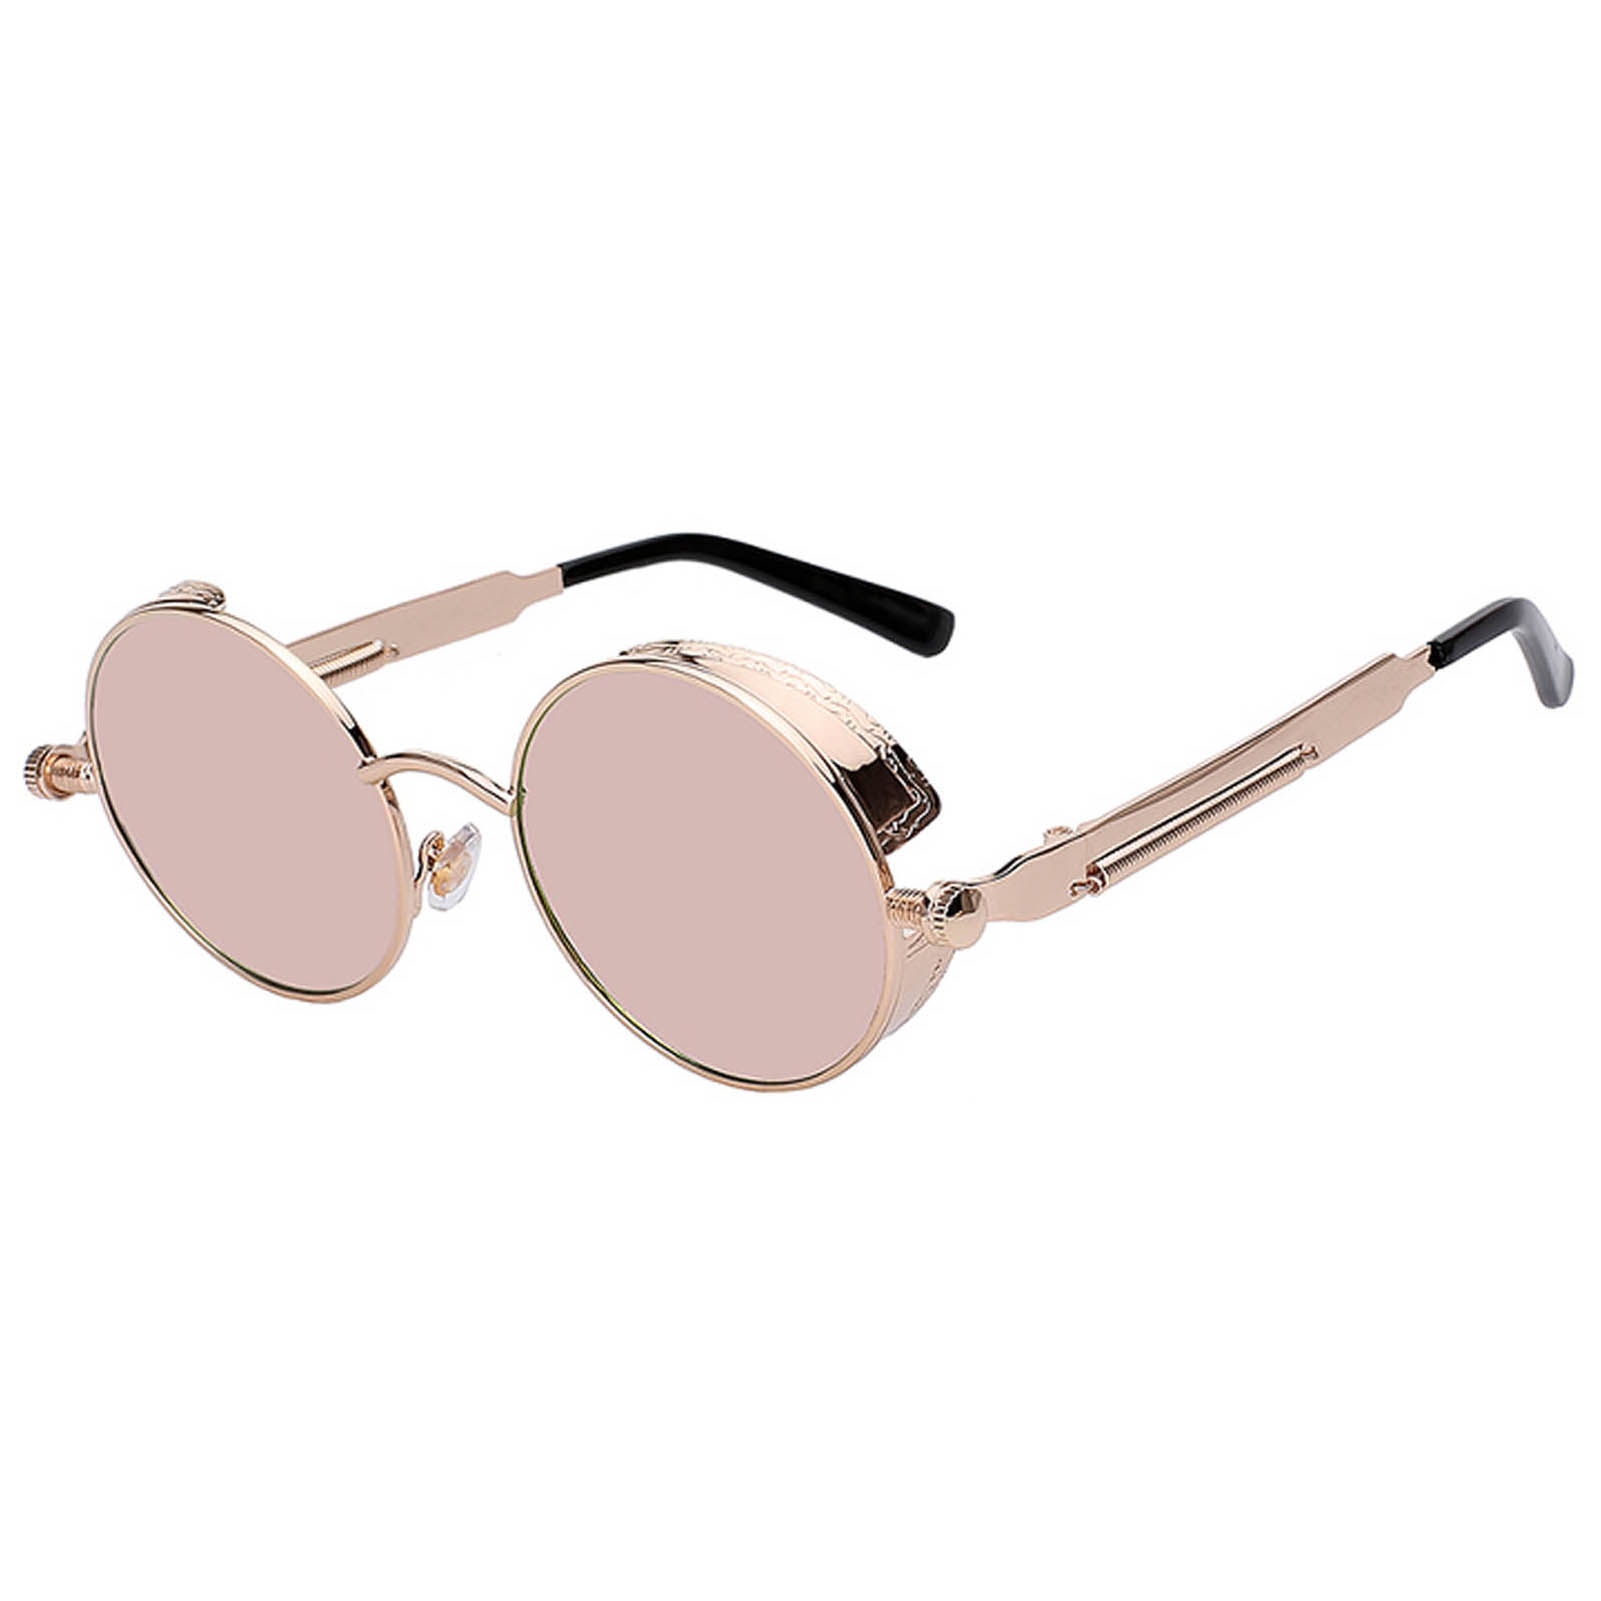 060 C3 Steampunk Gothic Sunglasses Metal Round Circle Gold Frame